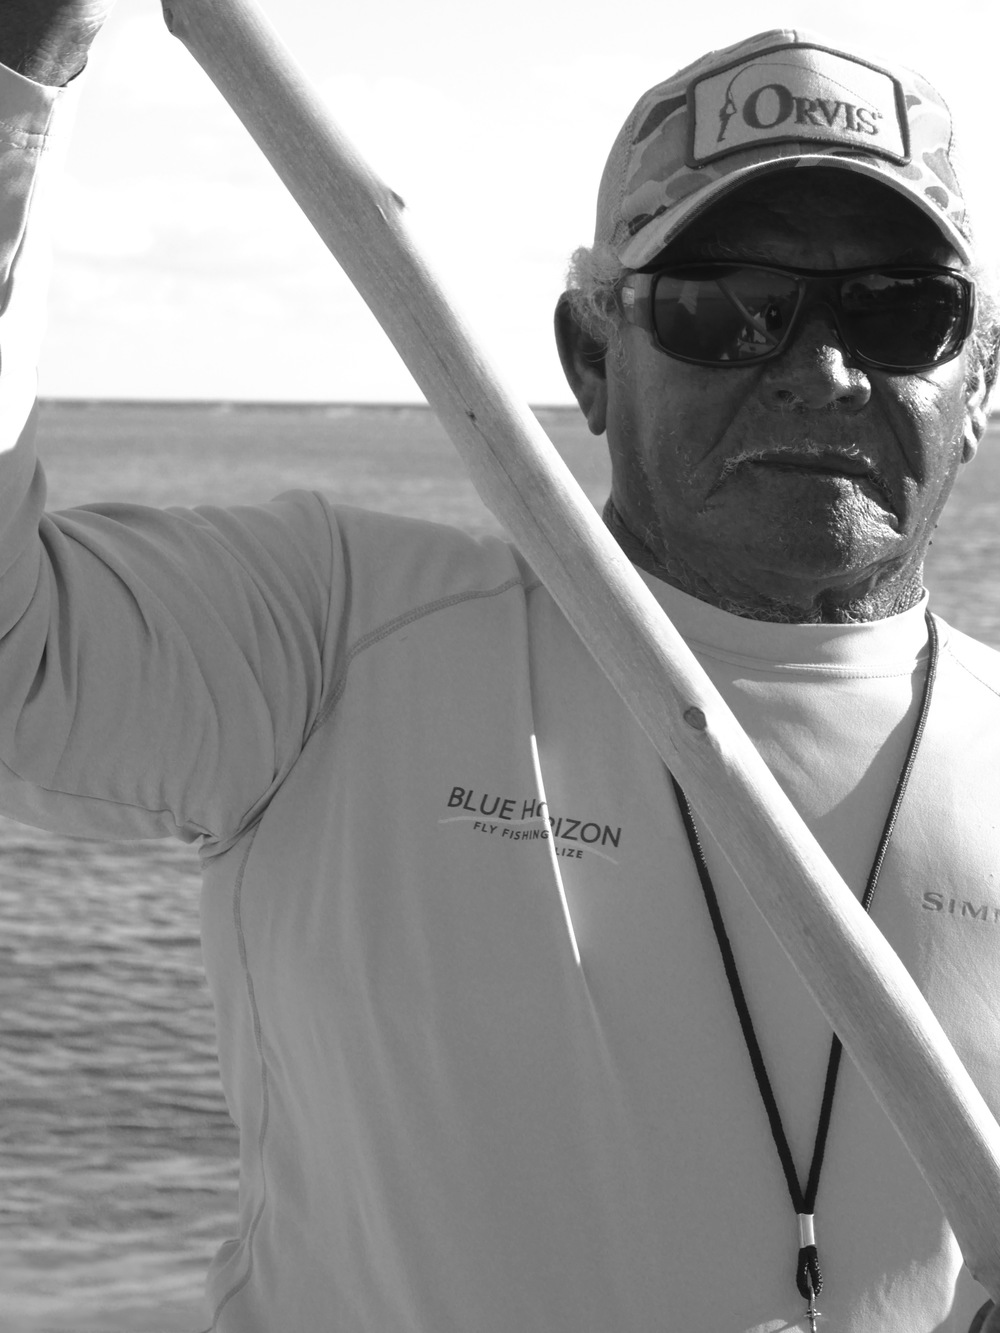 Lincoln Westby has a staggering amount of knowledge about guiding, the habitat, and the fish that he has come to master in his 40 plus years of guiding Belizean waters